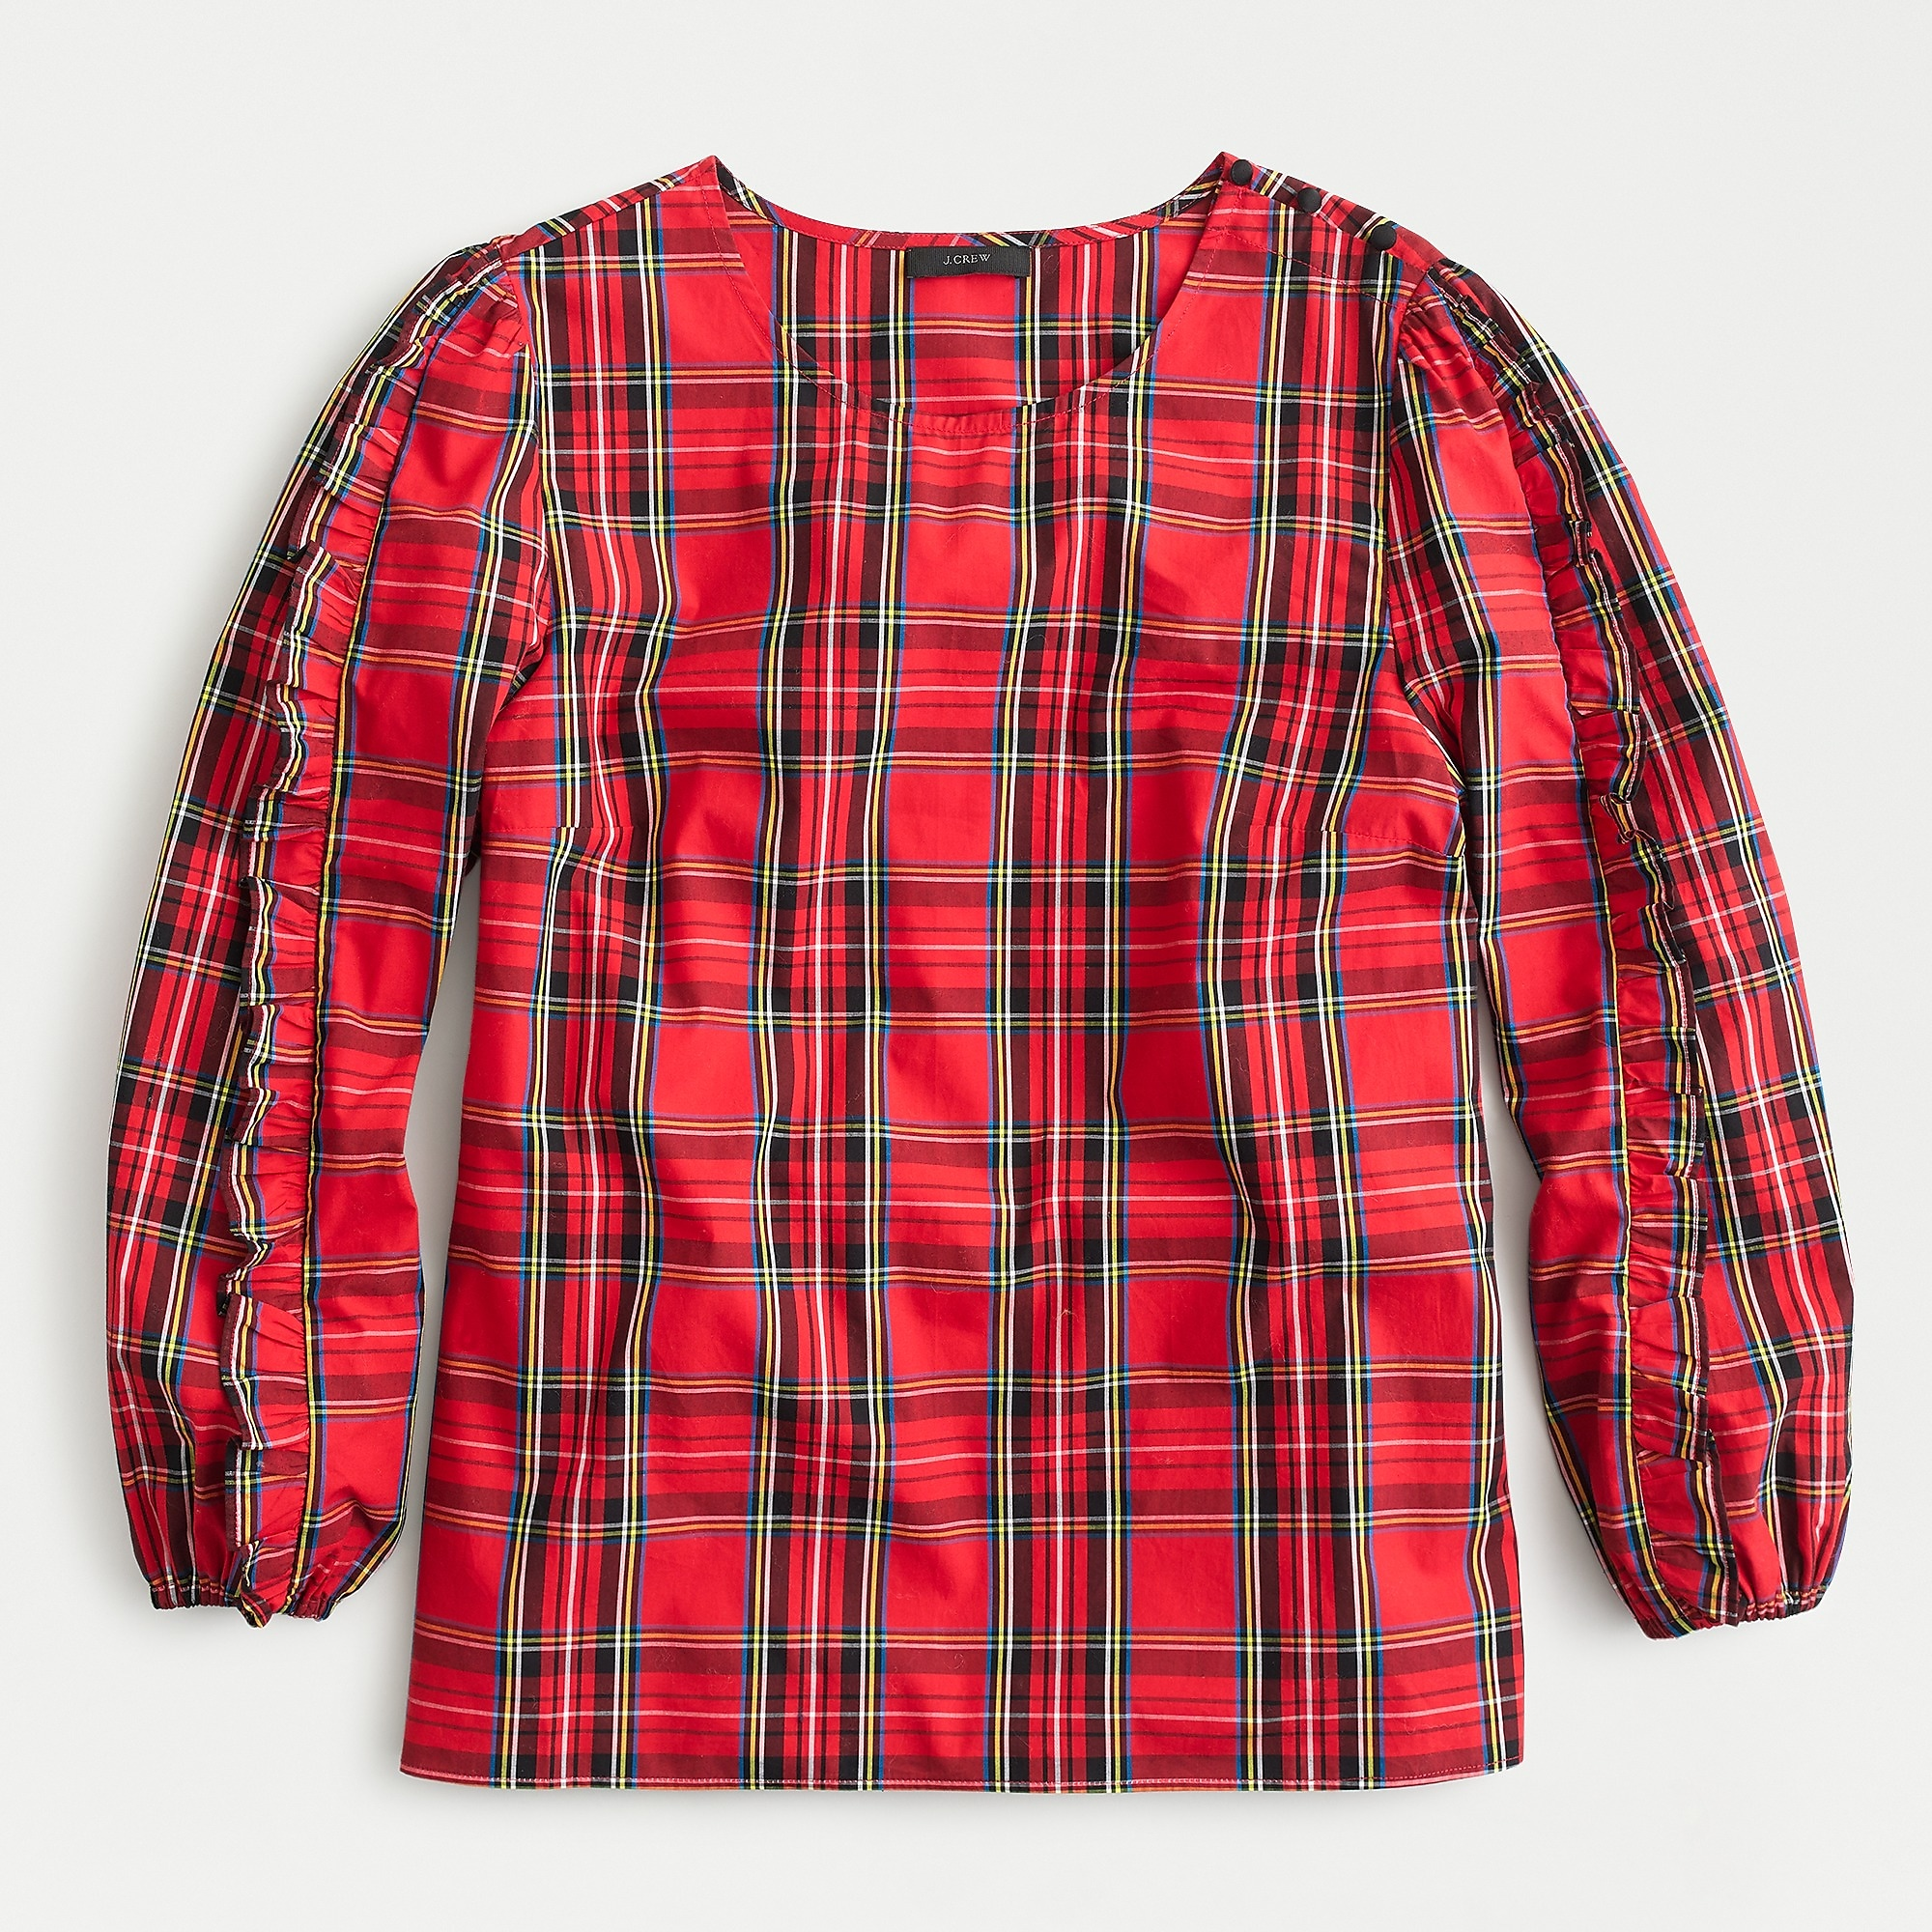 Ruffle-sleeve top in red Stewart tartan